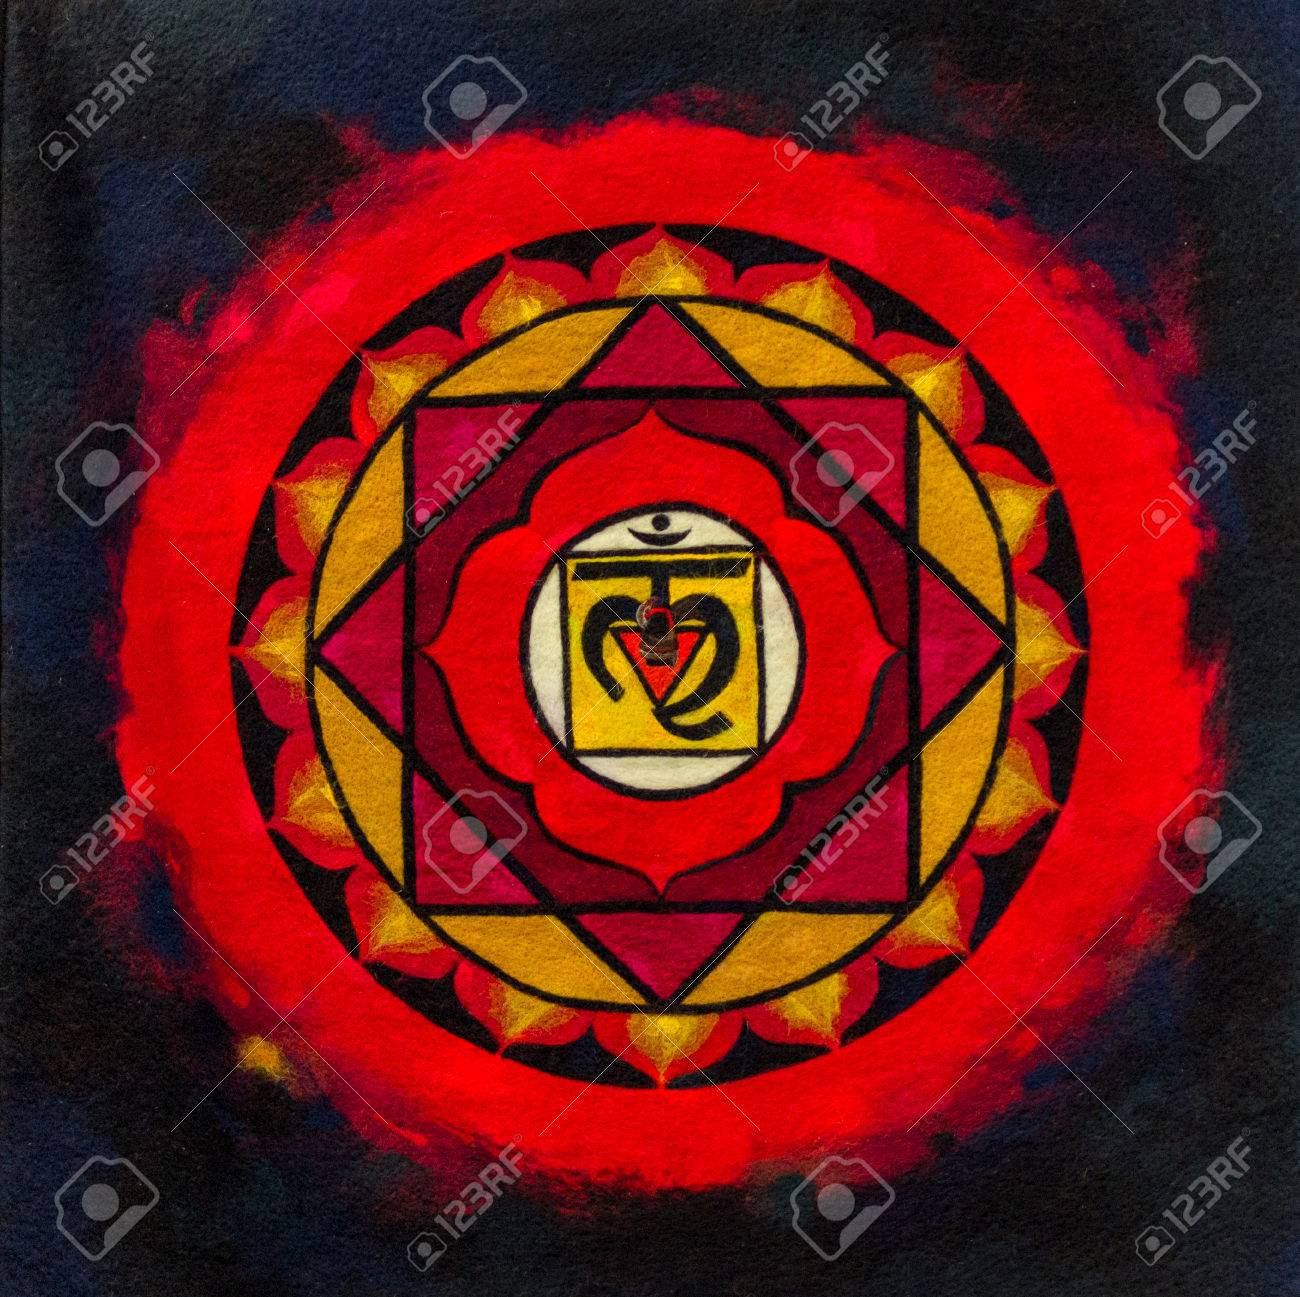 Bright red and black indian ohm image on material - 41555399